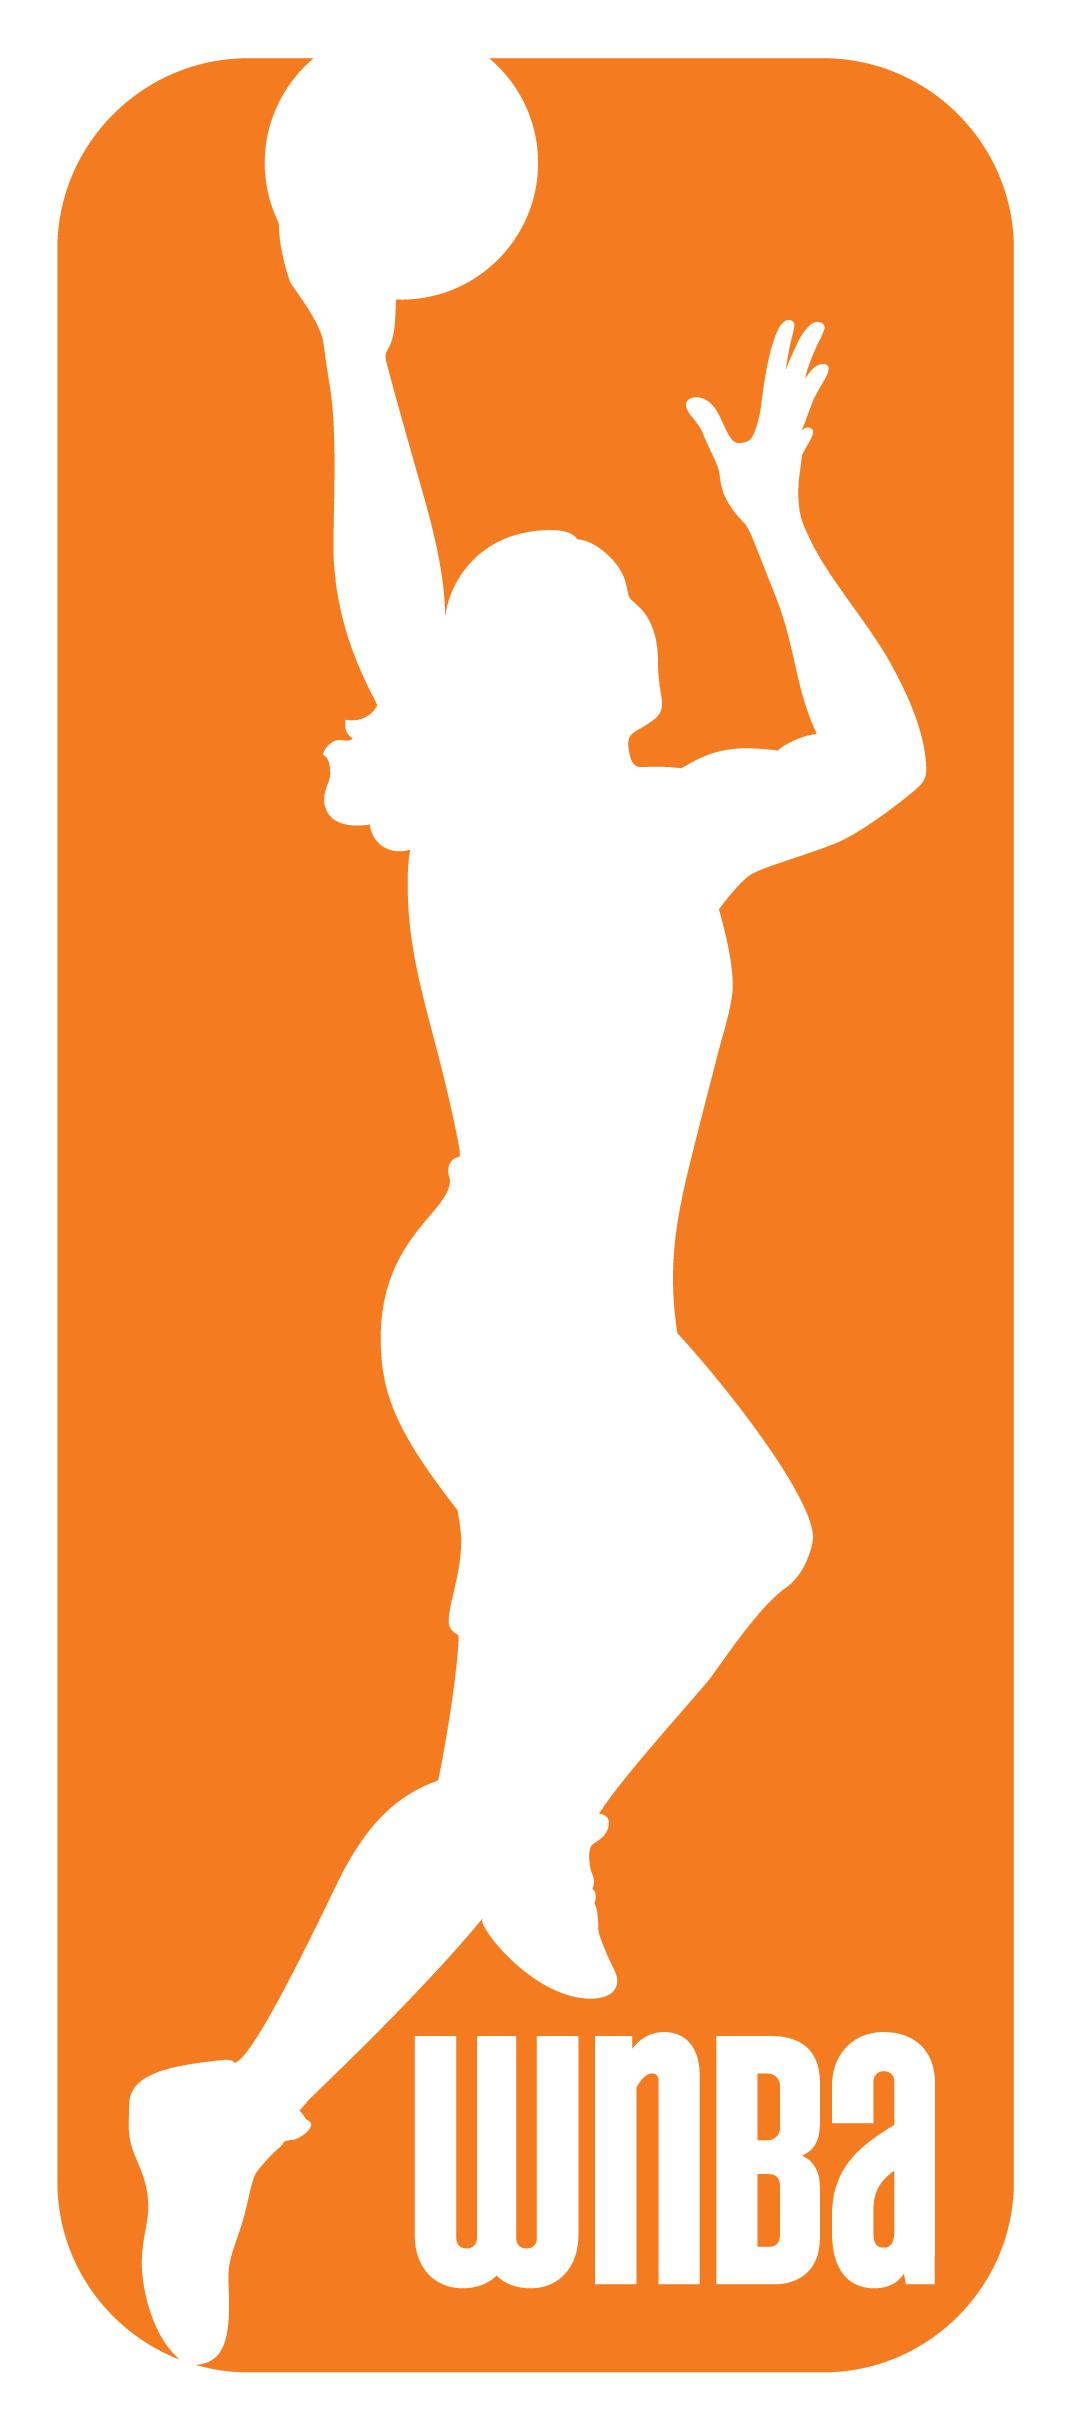 Debuting on April 1, the new WNBA identity will be seen across all WNBA assets, including team... [+] uniforms, broadcast, digital, signage and print materials.